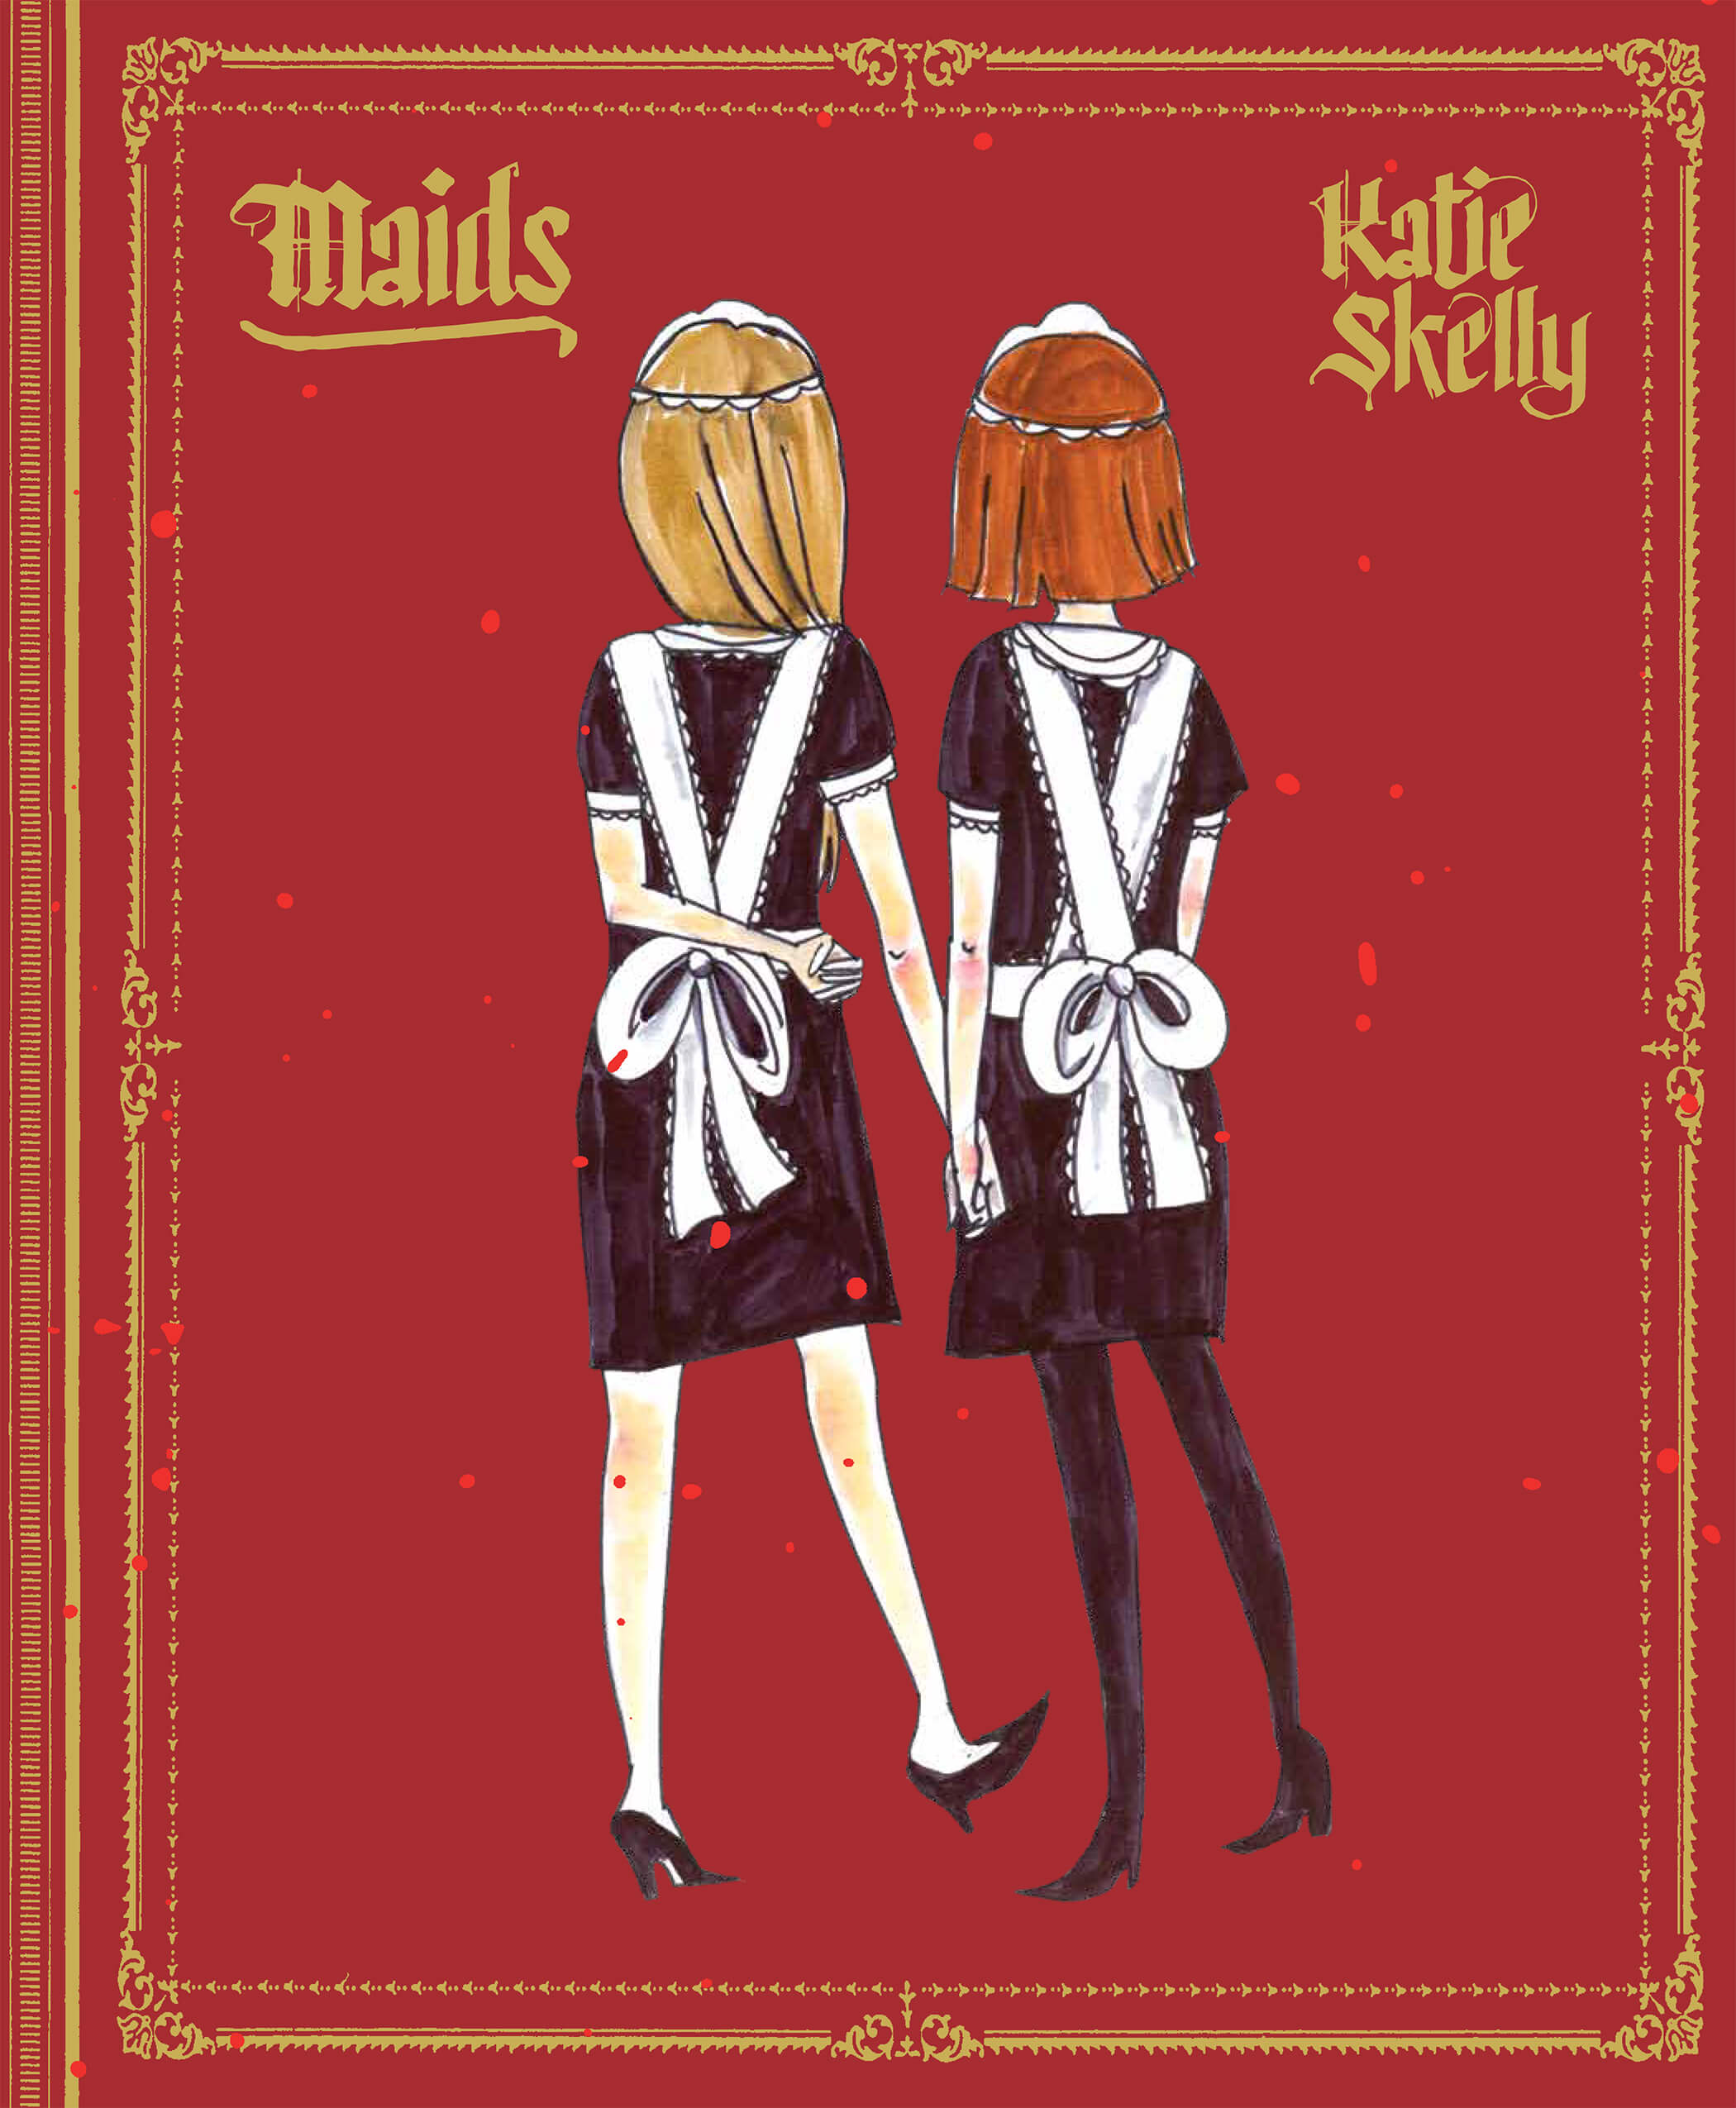 The cover of Maids by Katie Skelly -- the back of two girls wearing maid uniforms, their white apron bows tied. They hold hands on a red background surrounded by gold gilt.